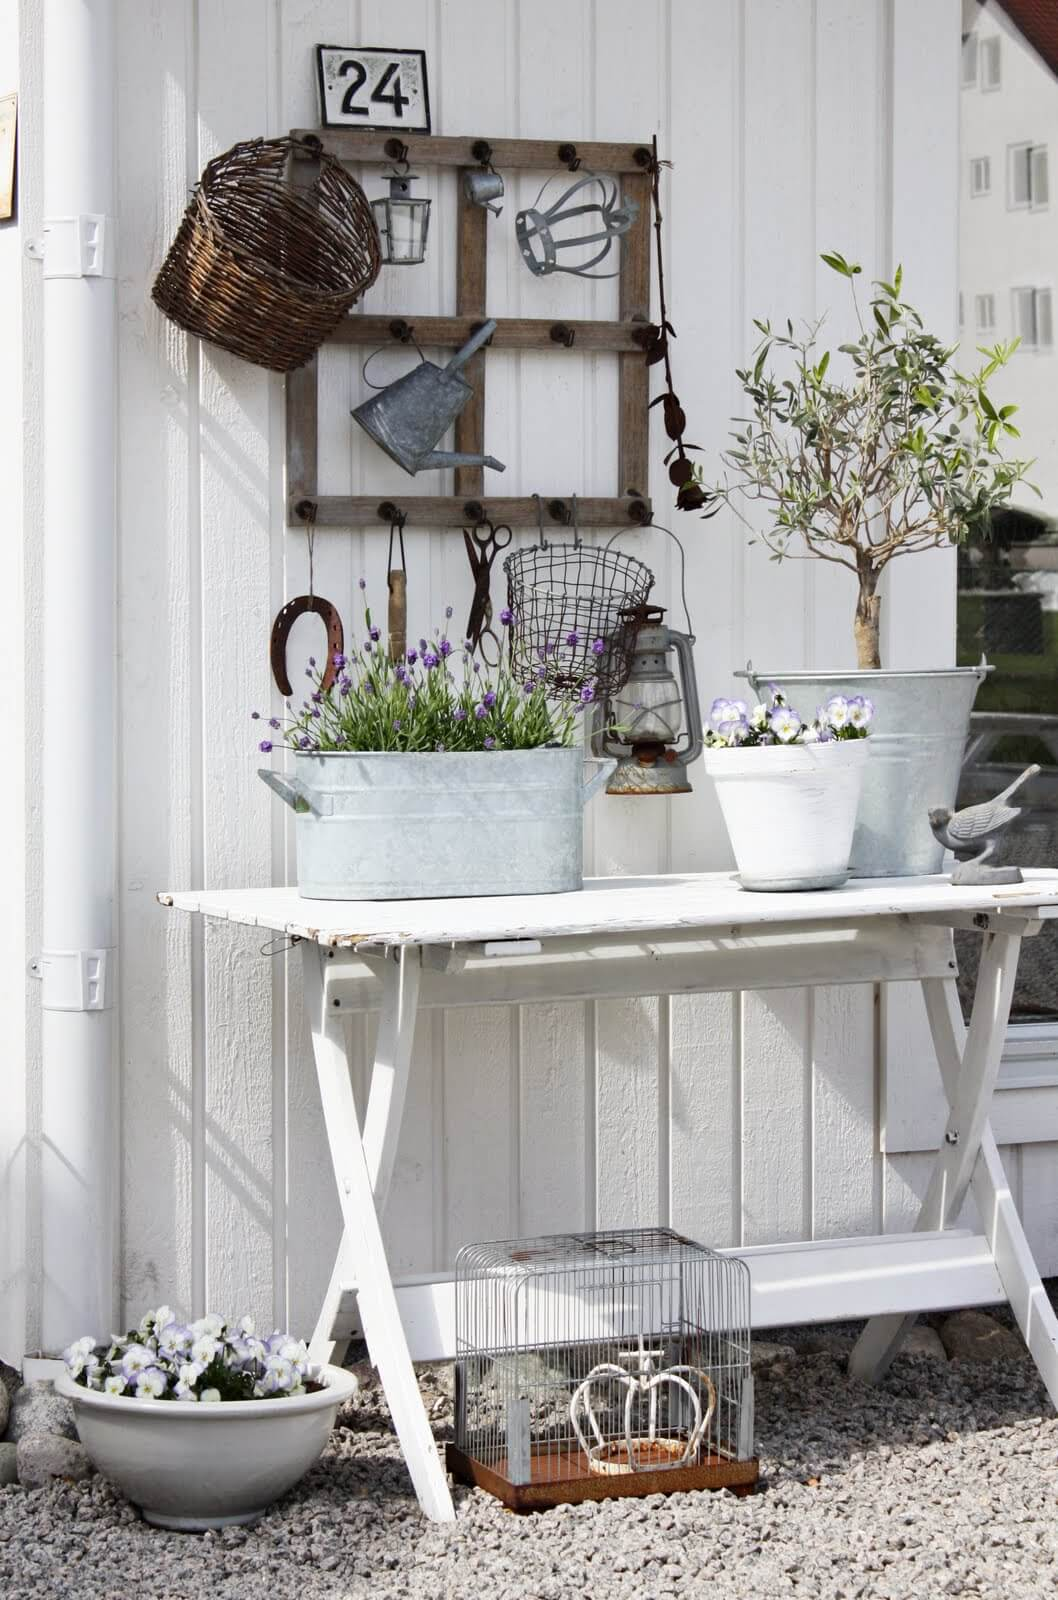 5 Unexpected Ways to Add Vintage to Your Garden Decor - Part 1 ...